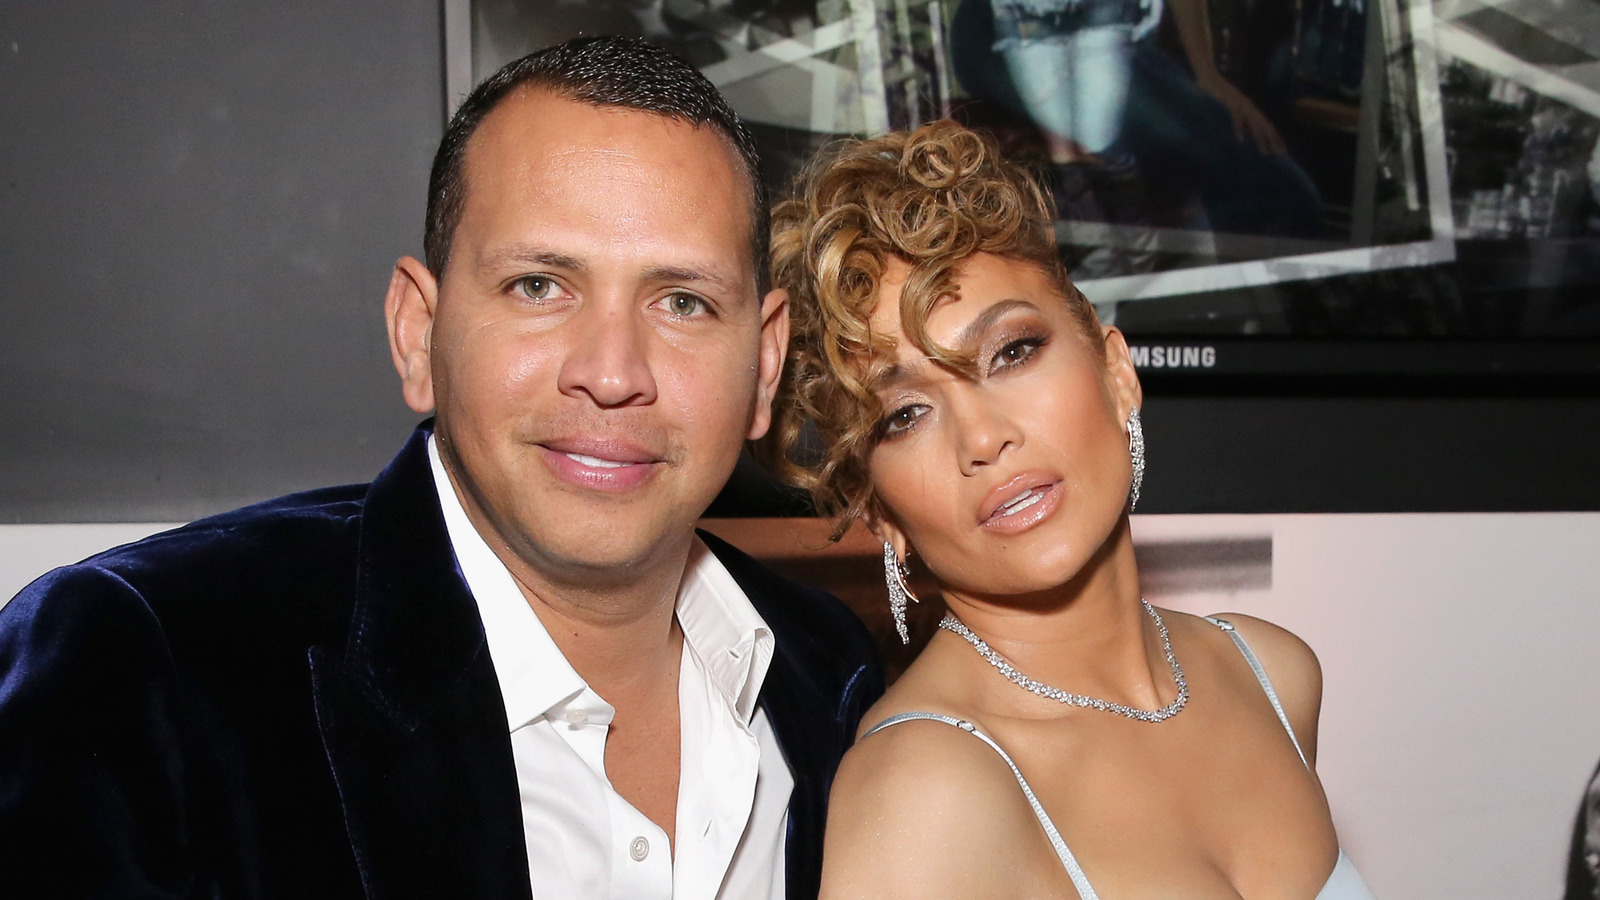 A Look Inside Jennifer Lopez And Alex Rodriguez's Insanely Glamorous Life